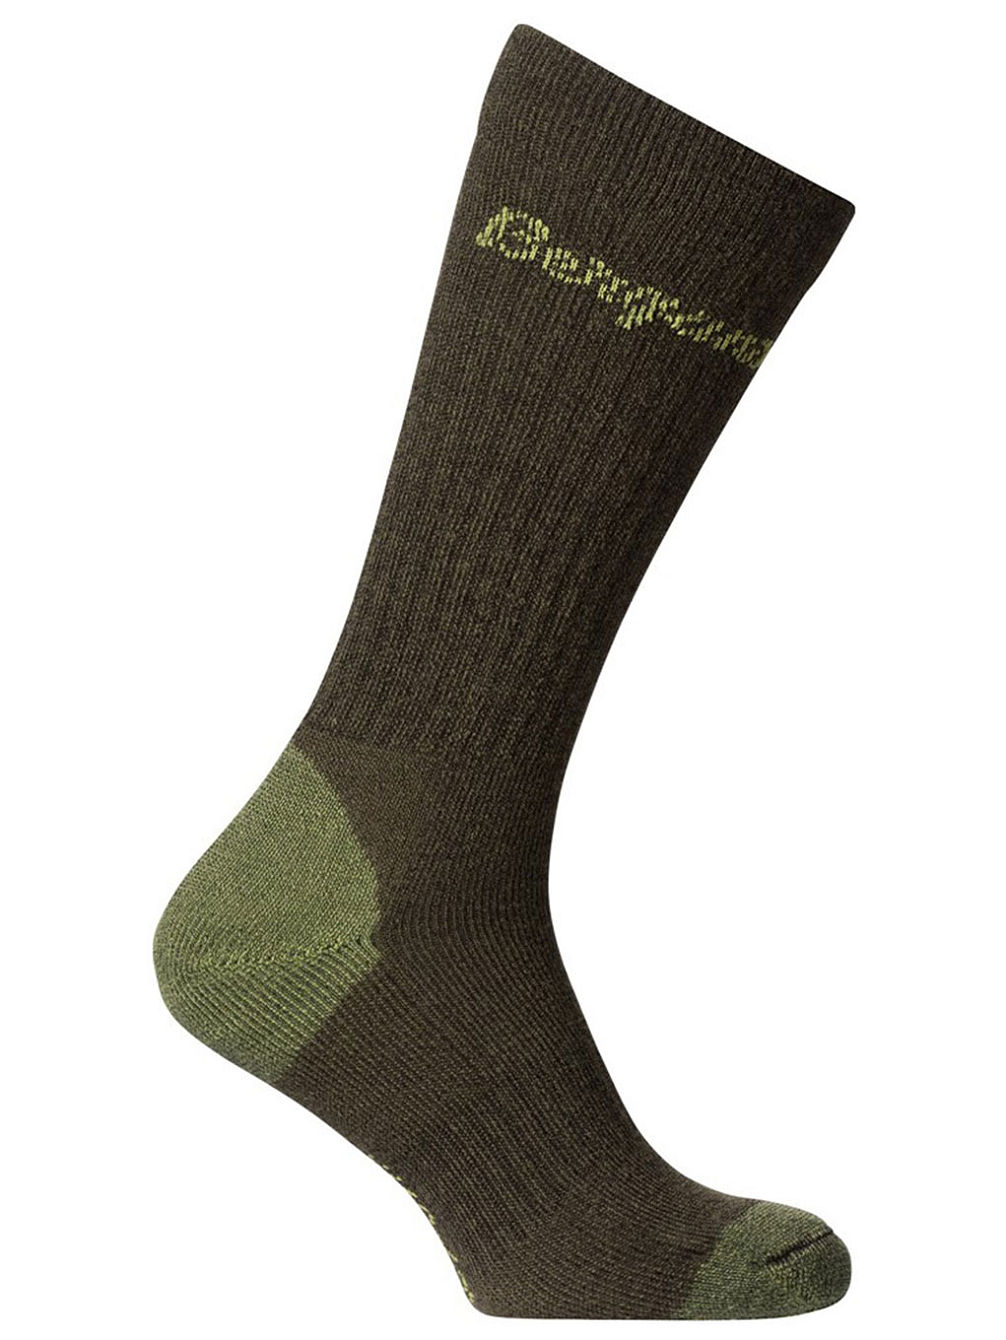 Hogna Outdoor Wool High (40-43) Socken